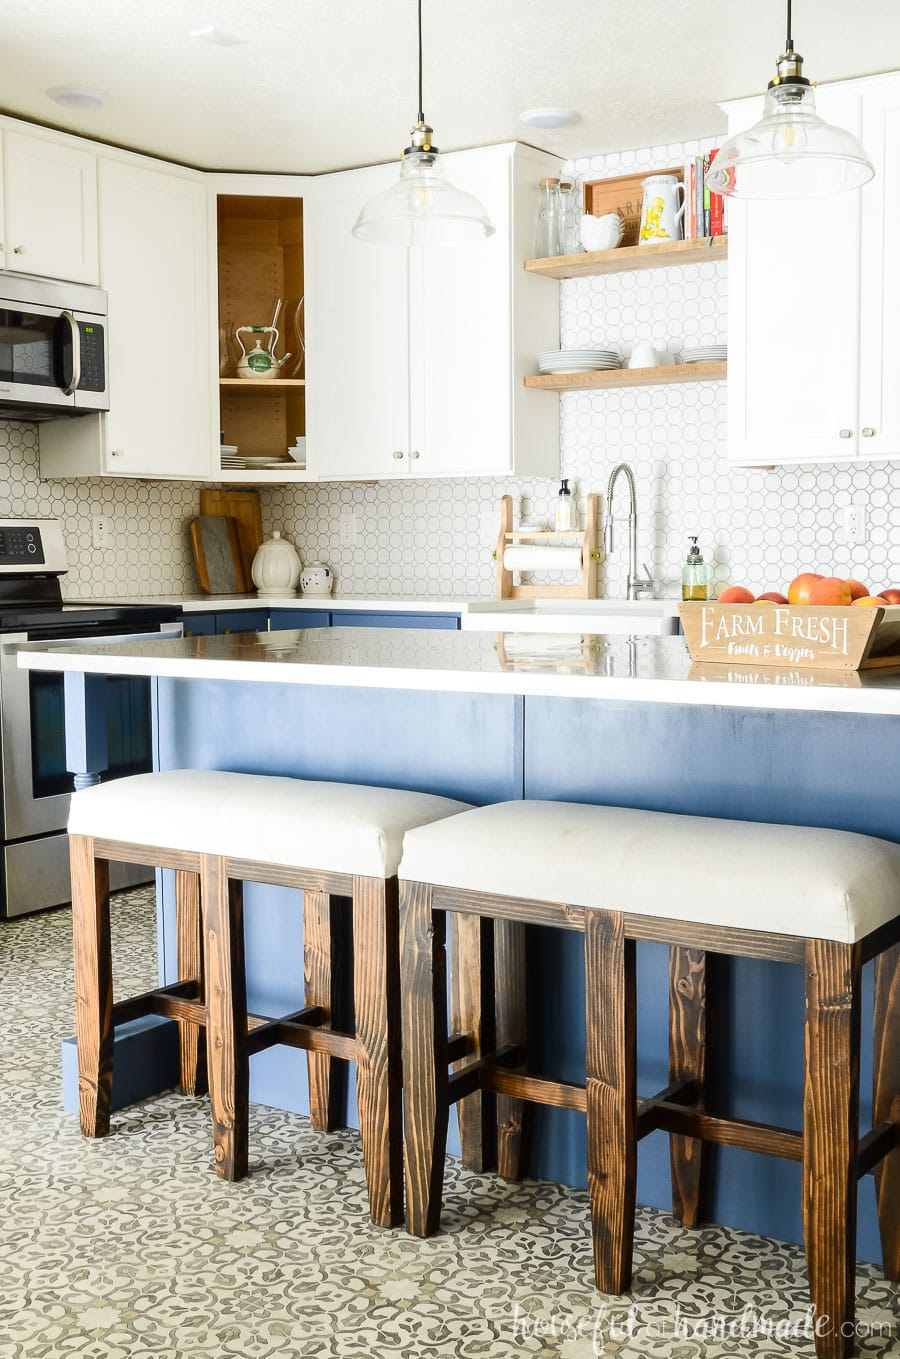 two tone kitchen island gray backsplash blue white reveal houseful of handmade farmhouse with bar stool benches at it cabinets